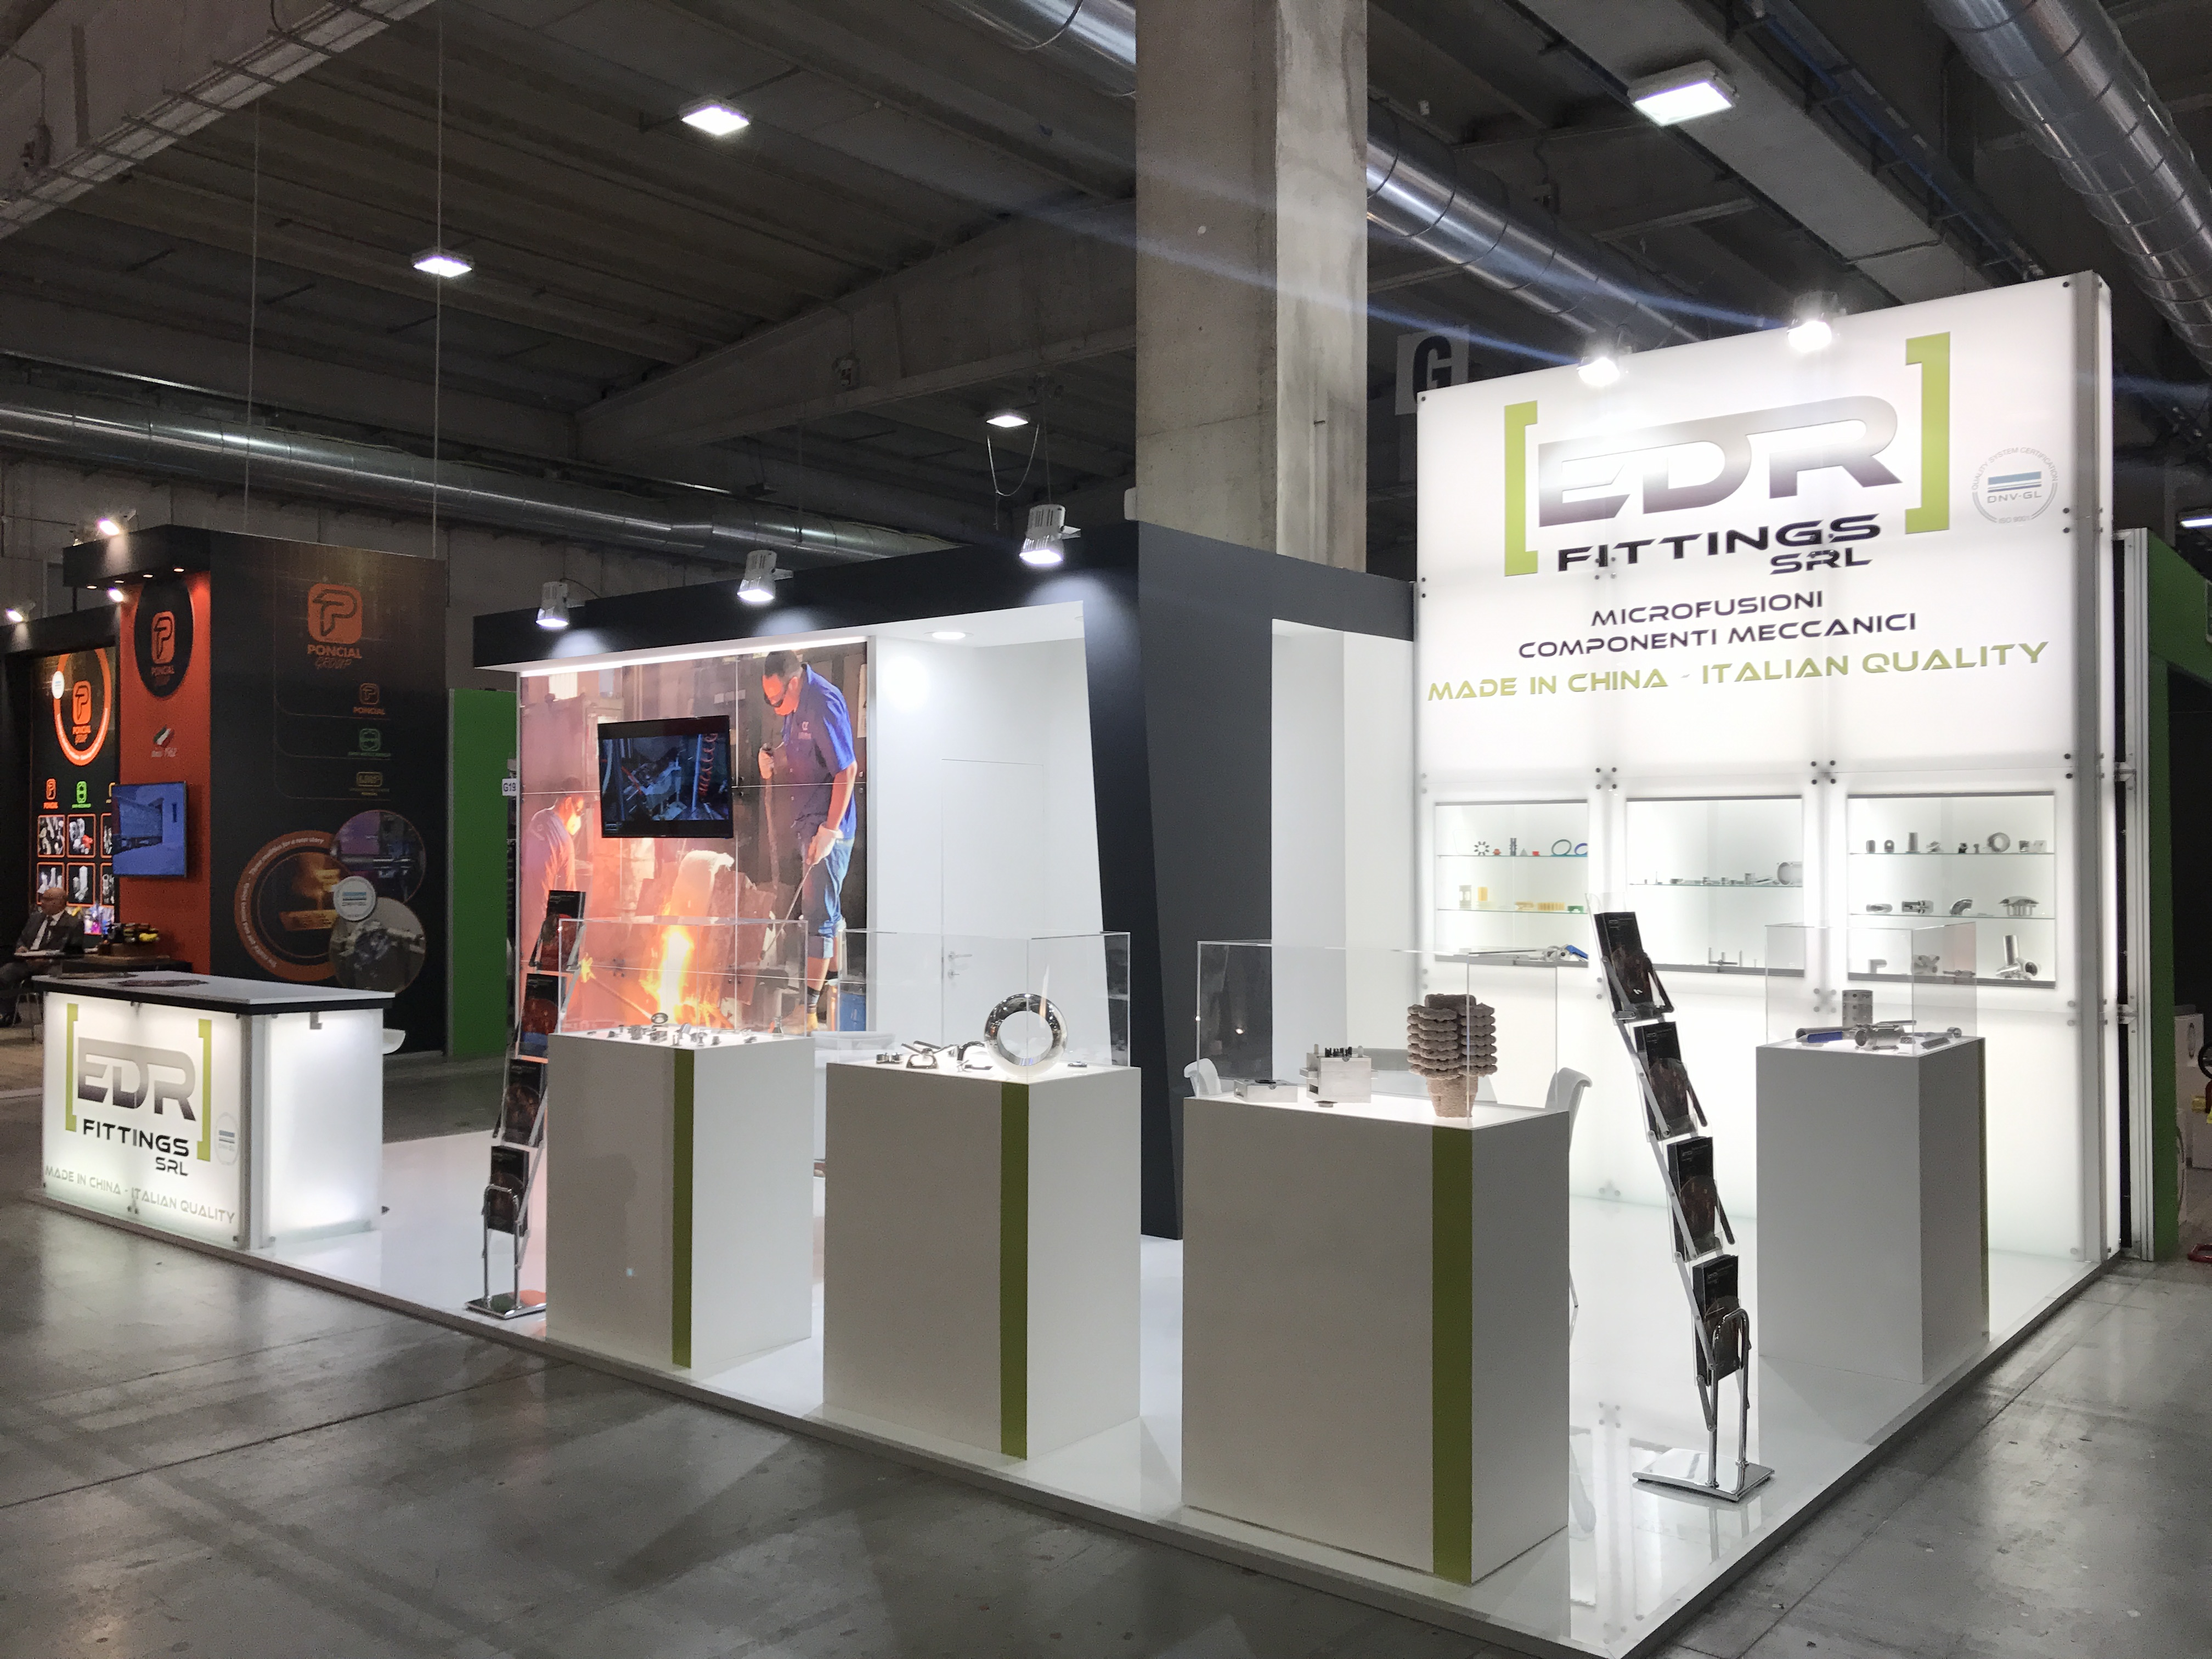 fiera MECSPE 2017 - Edr Fittings